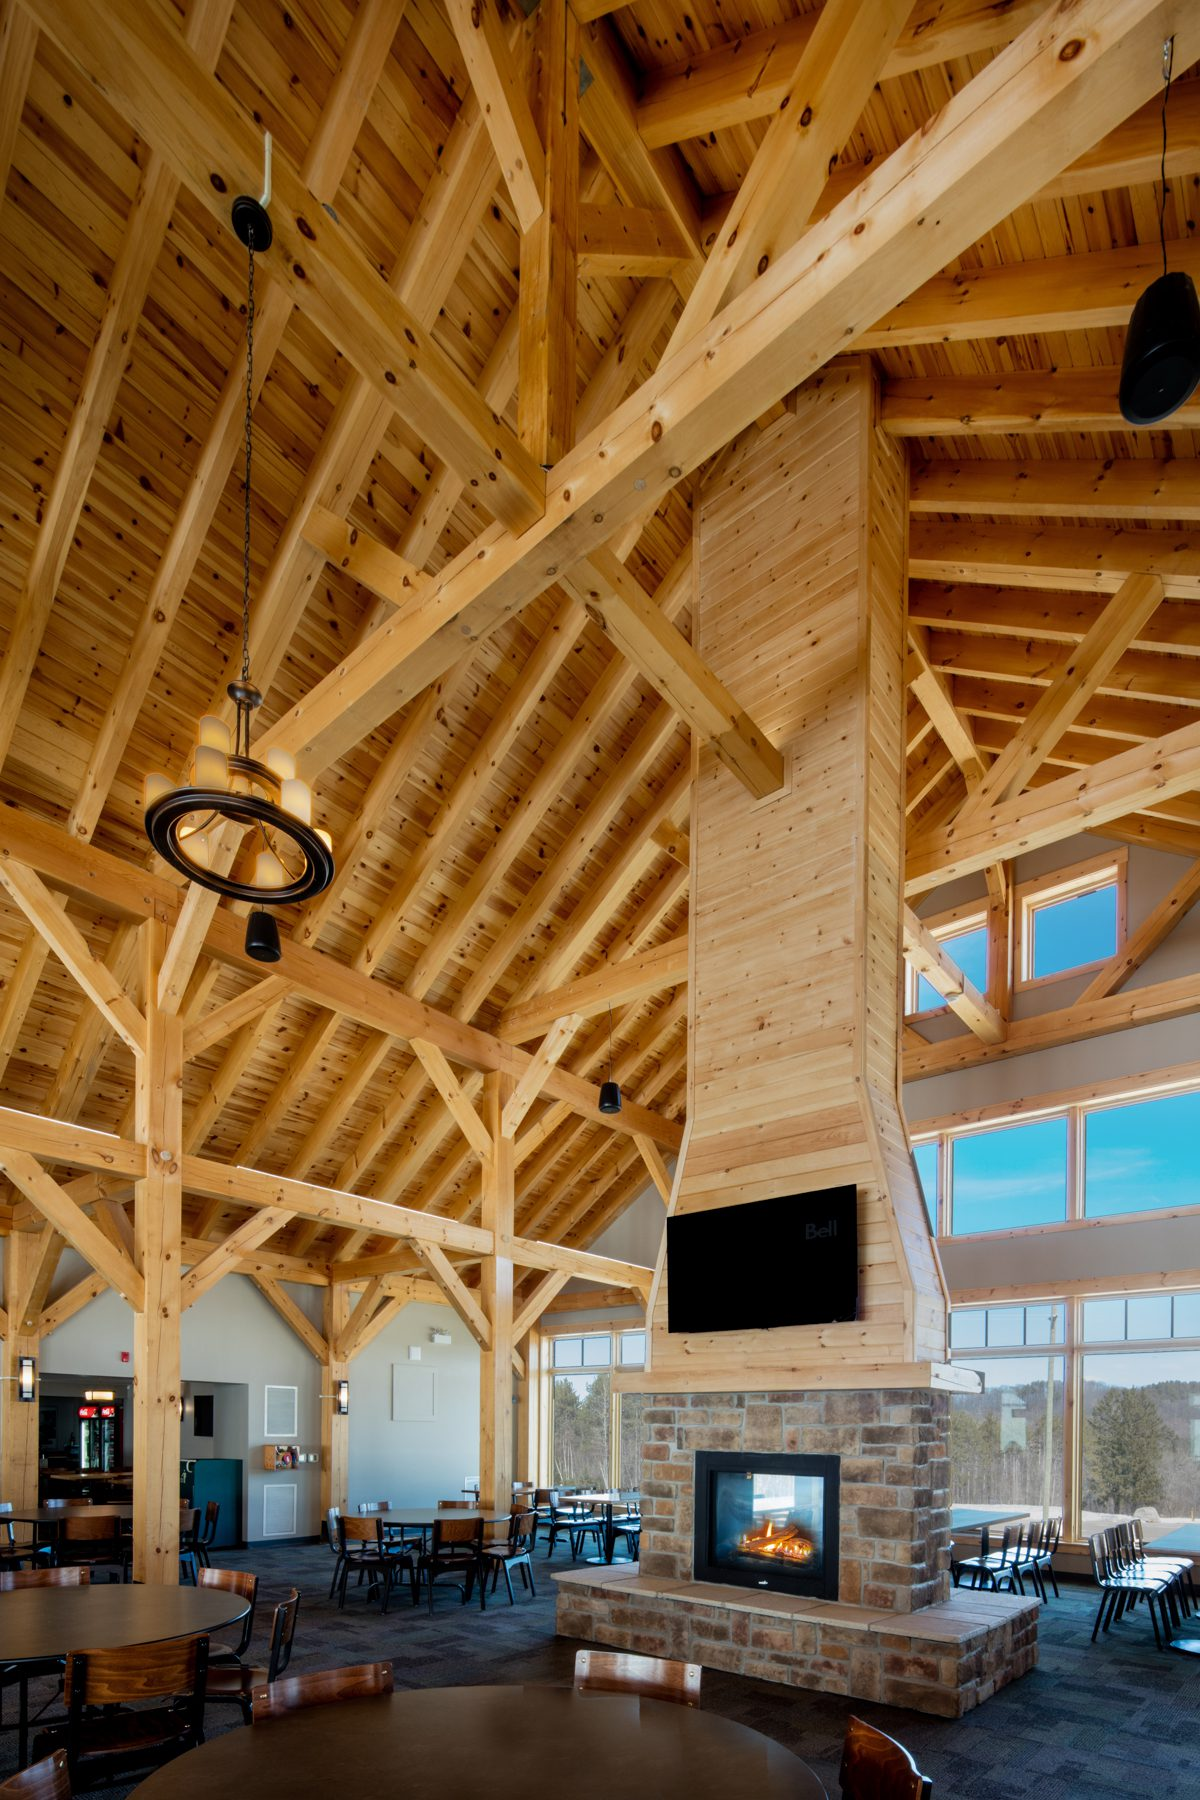 Normerica Timber Frames, Heights of Horseshoe, Ski & Country Club, Commercial Projects, Barrie, Ontario, Interior, Clubhouse, Fireplace